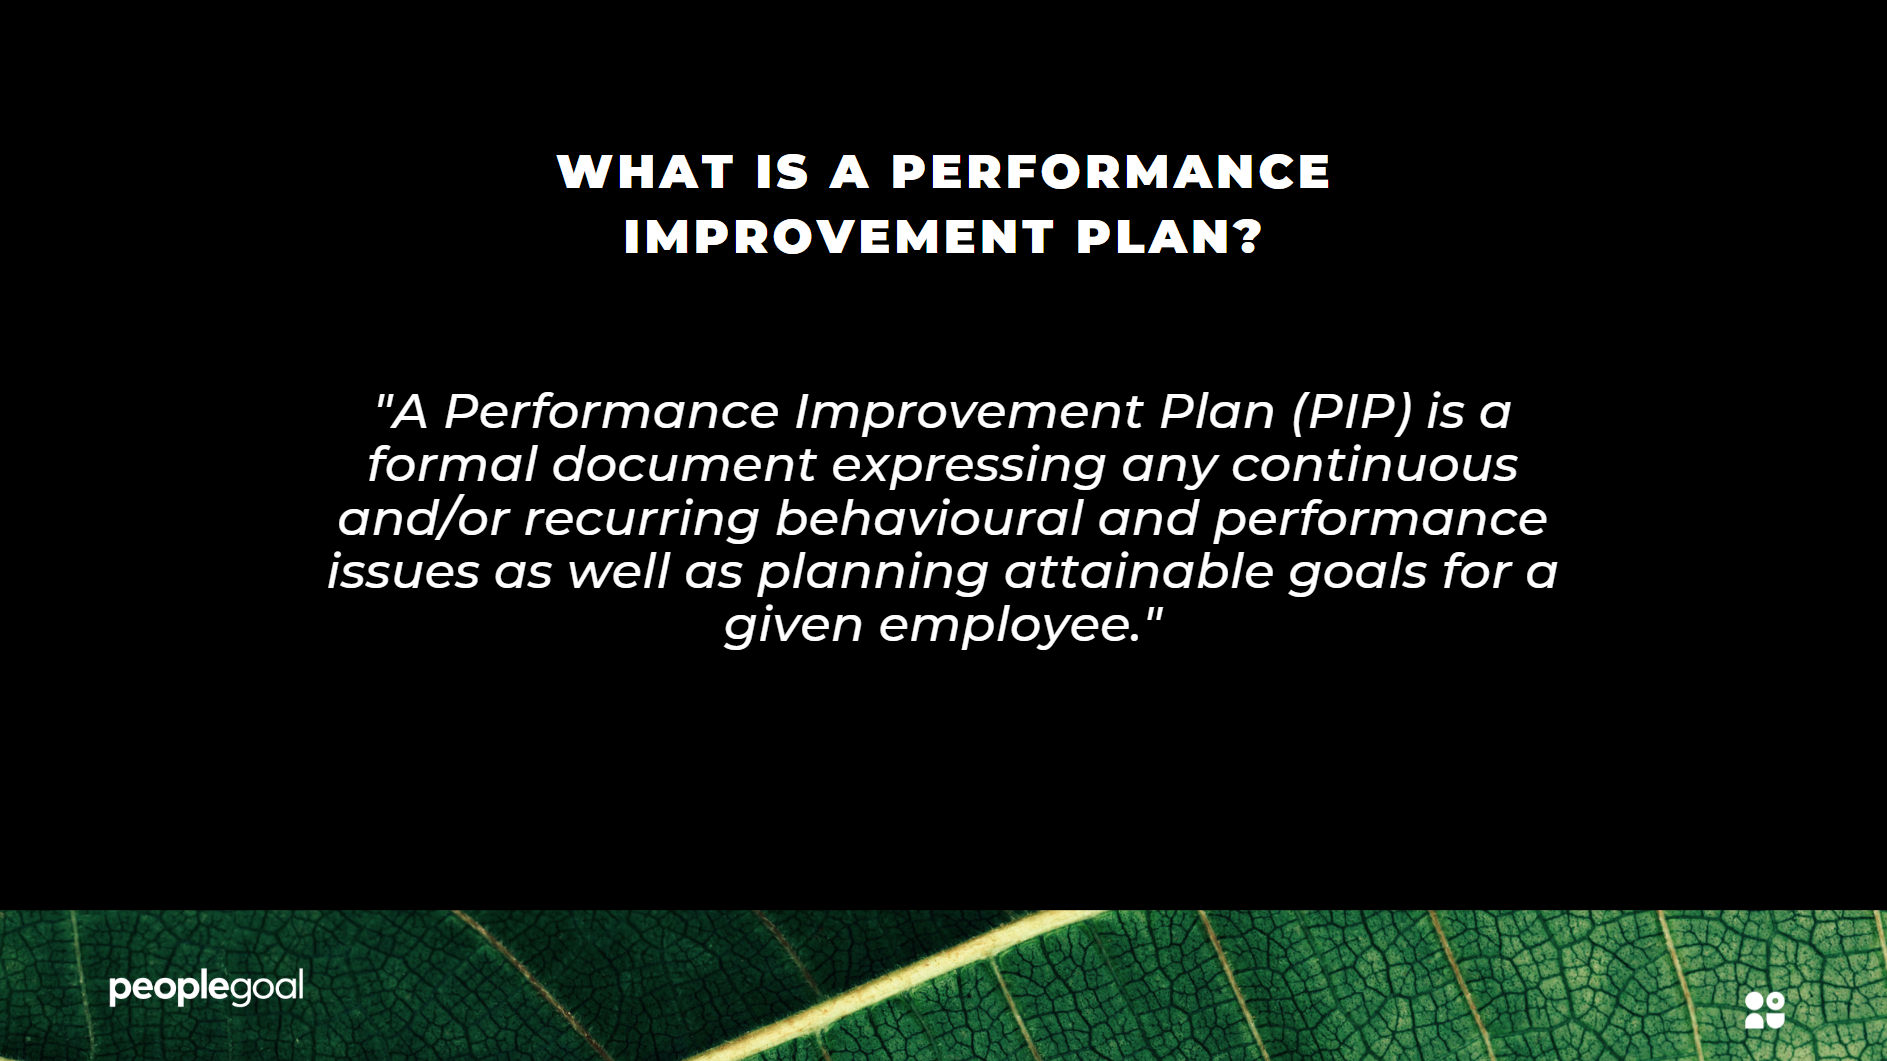 Performance Improvement Plan Definition